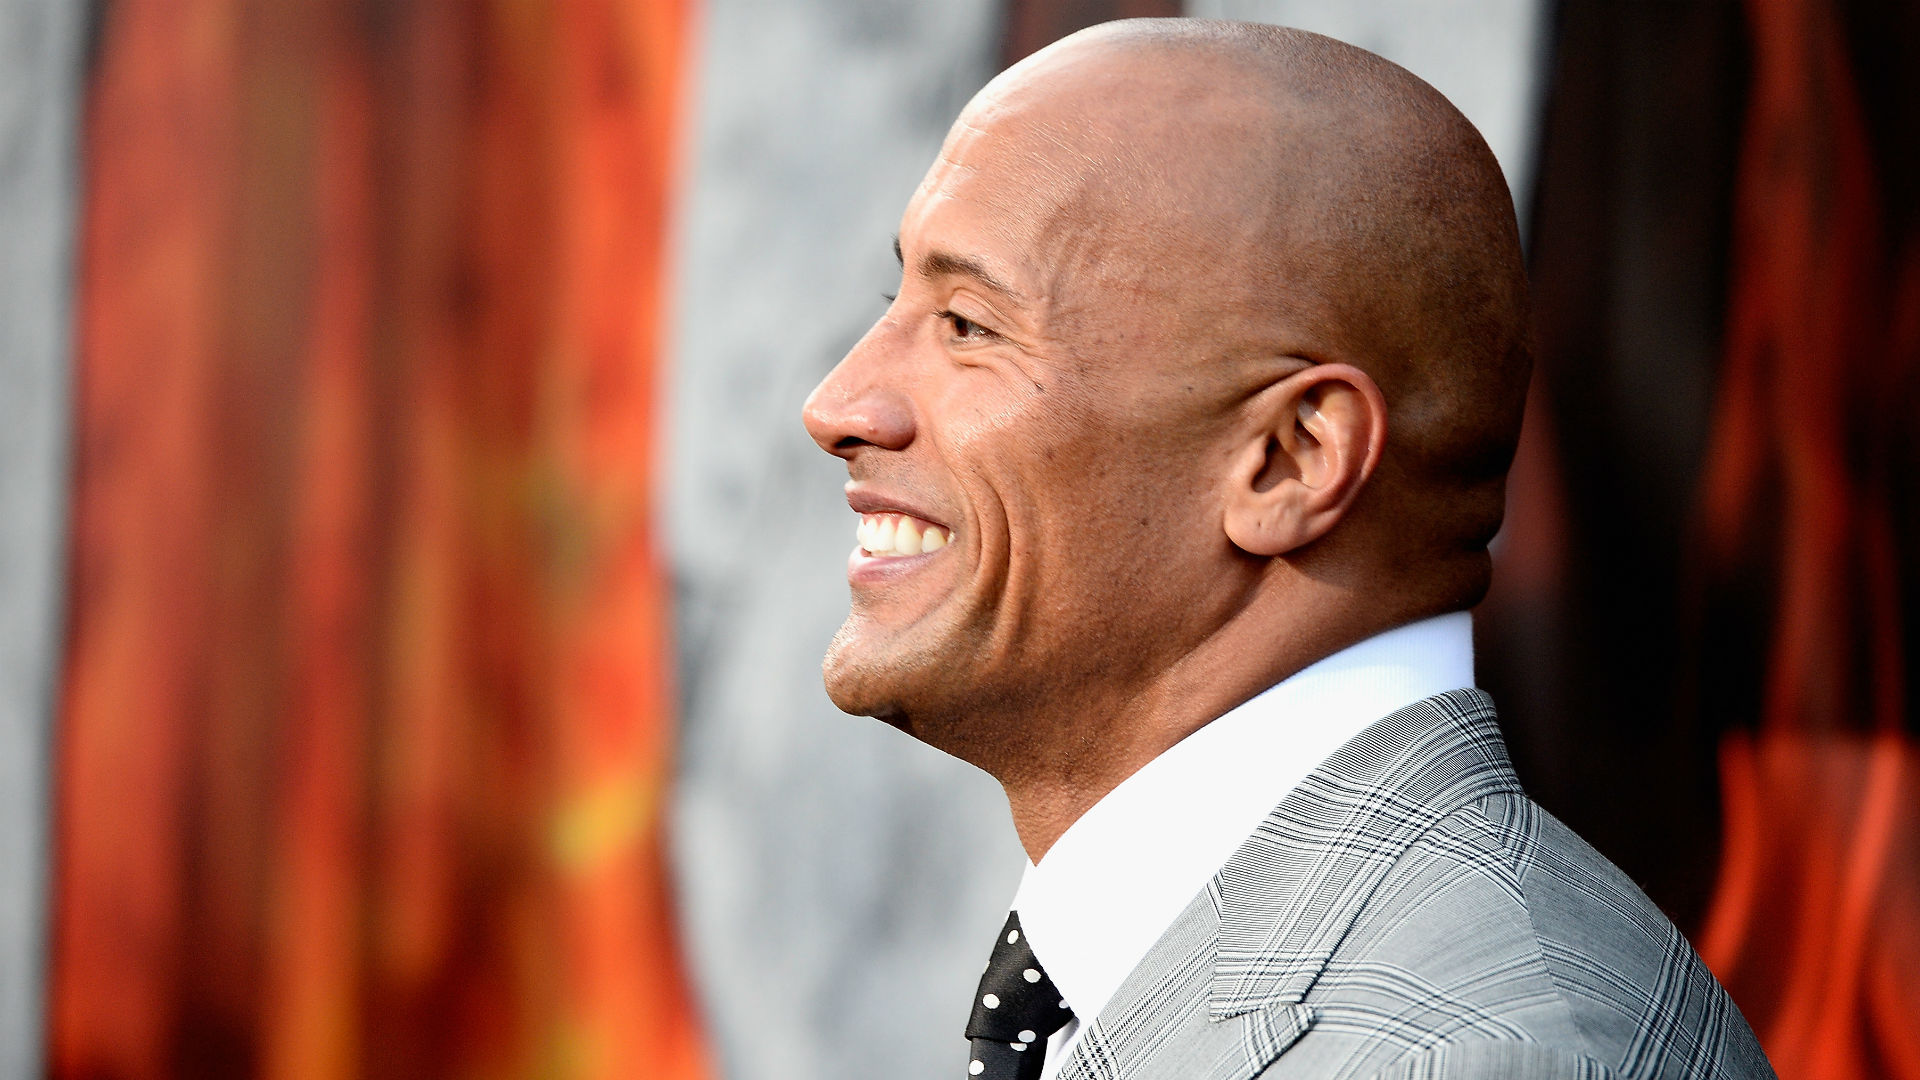 The Rock-071015-USNews-Getty-FTR